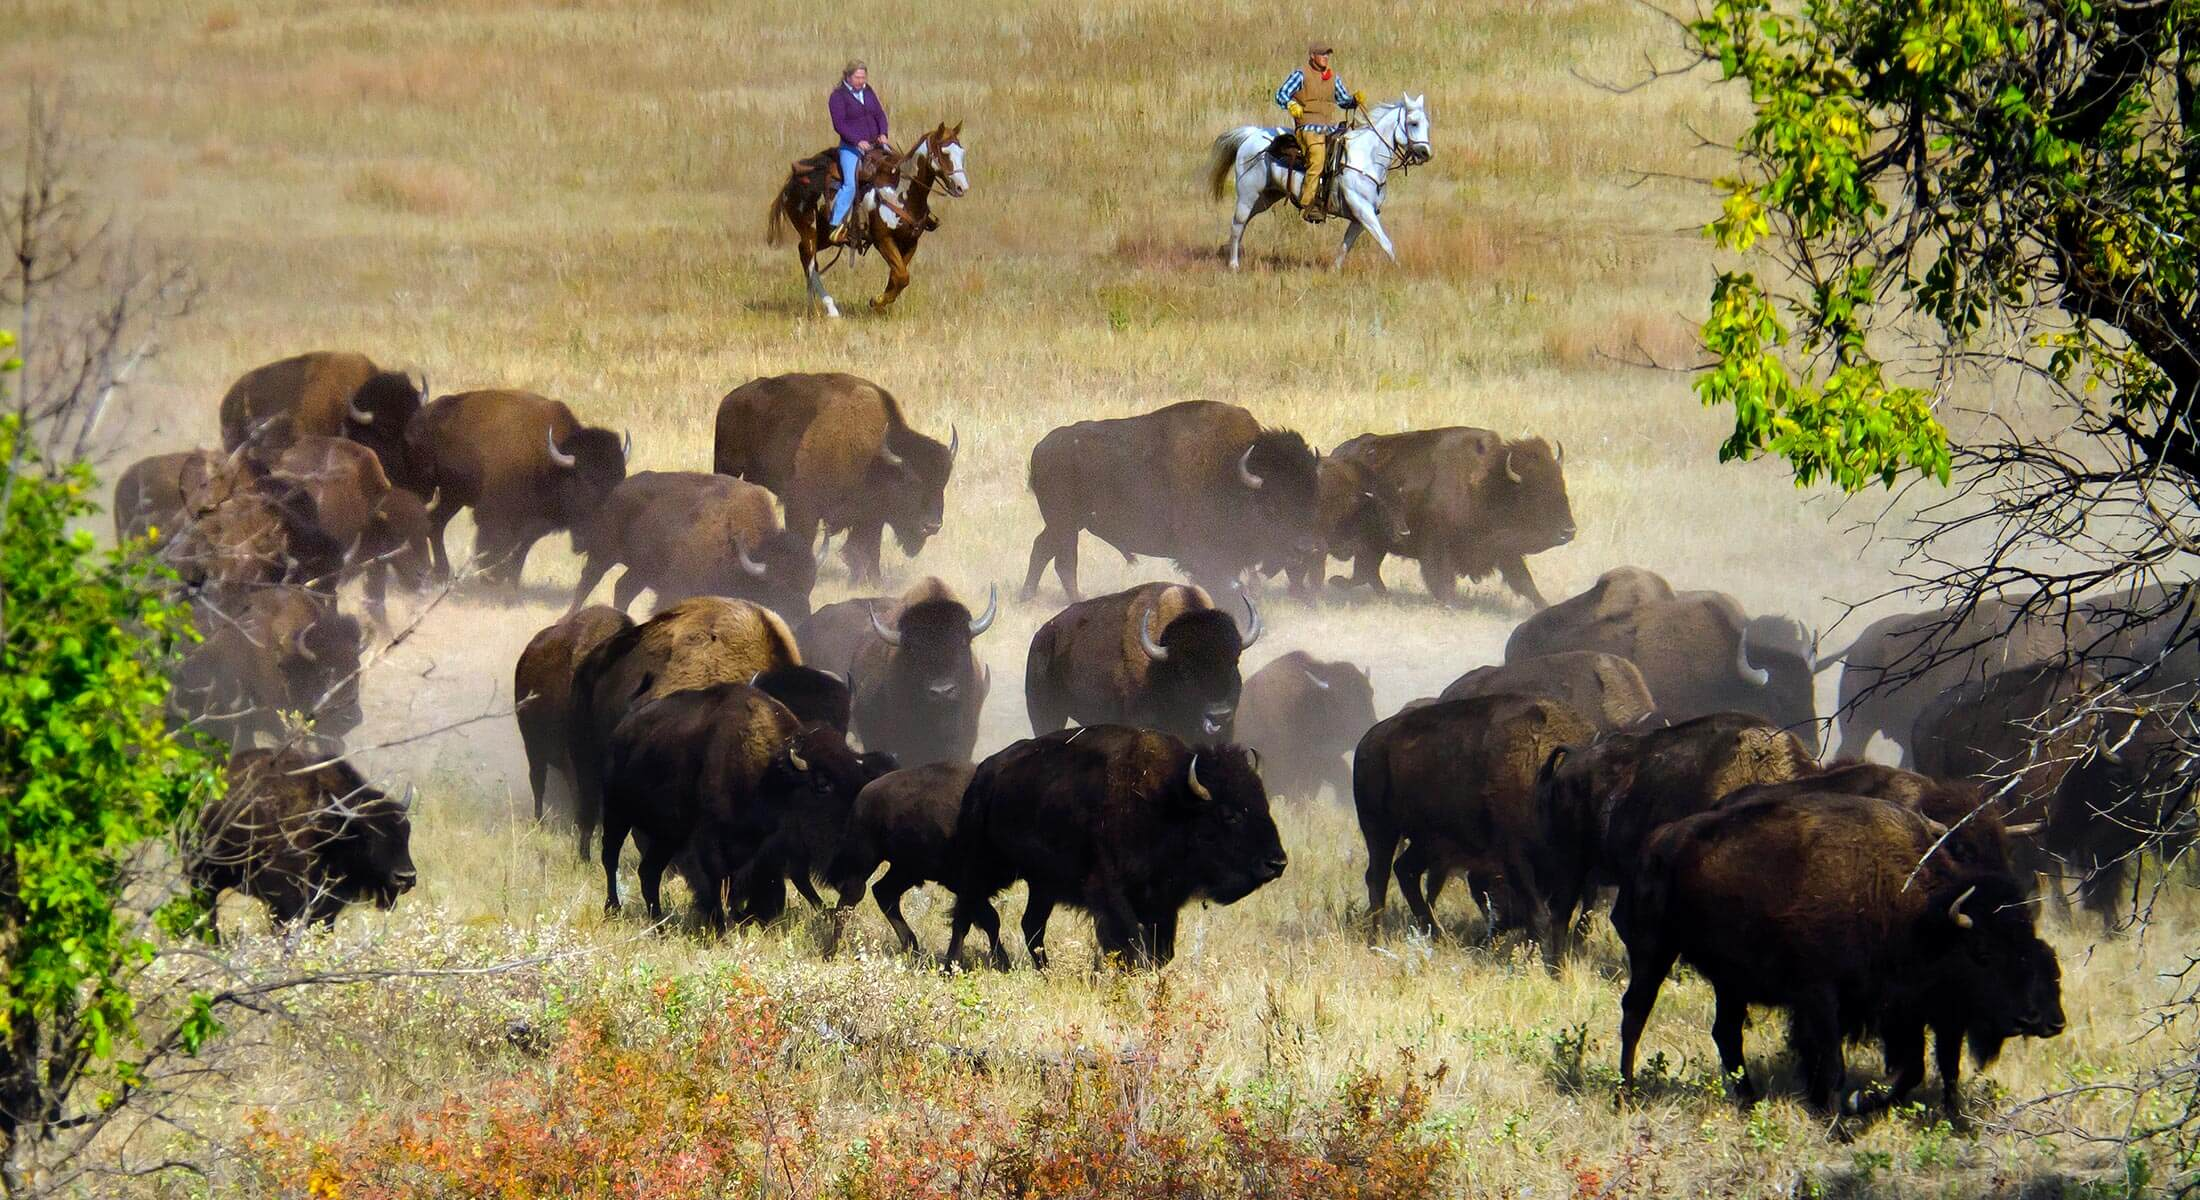 Buffalo Roundup Riders herding buffalo herd